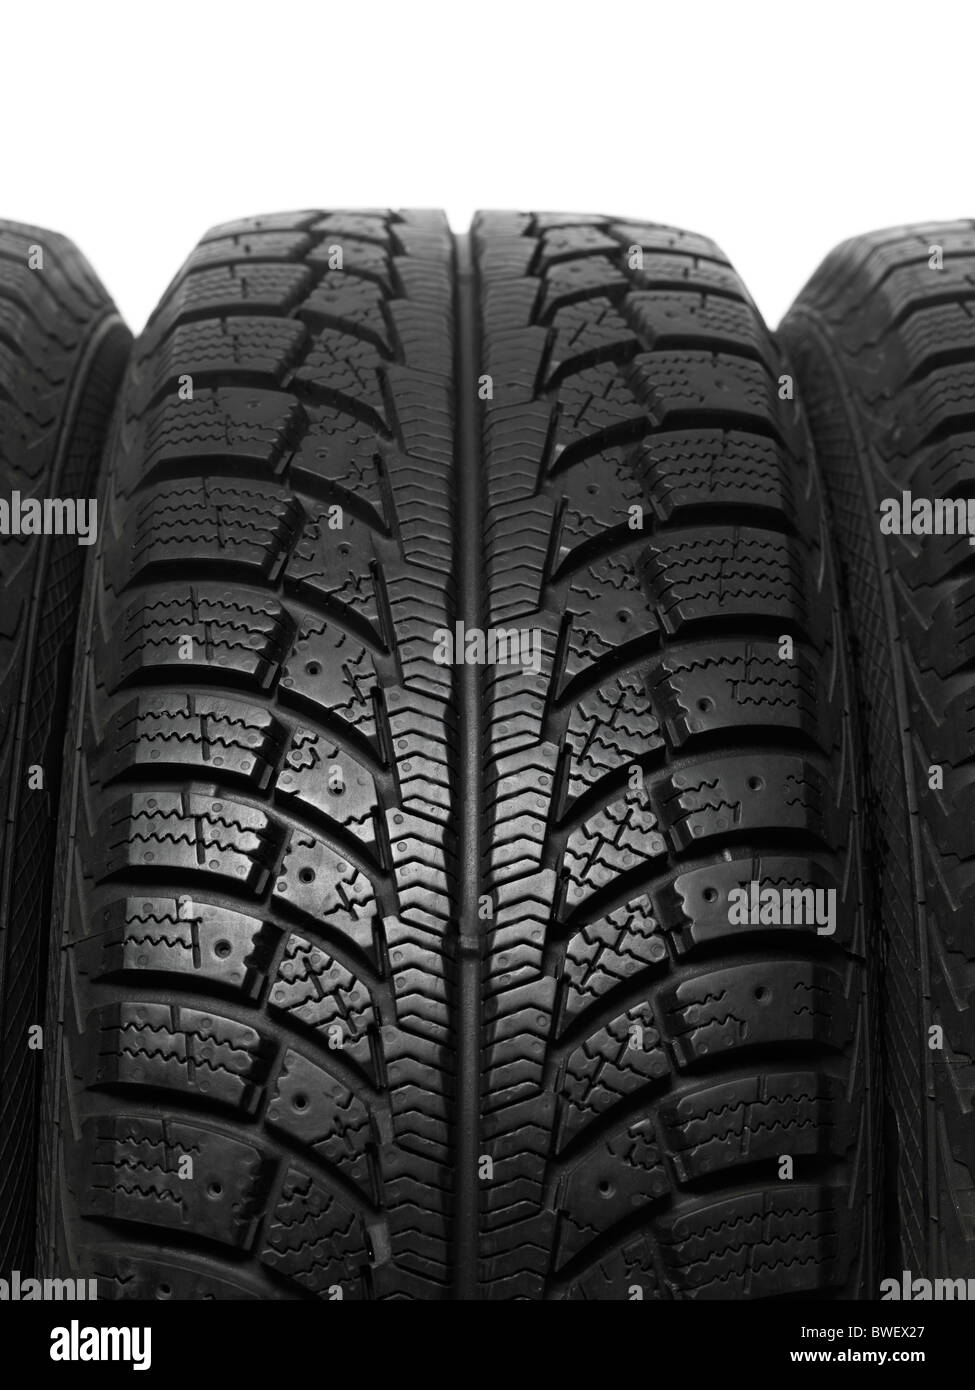 Closeup of a winter car tire tread - Stock Image